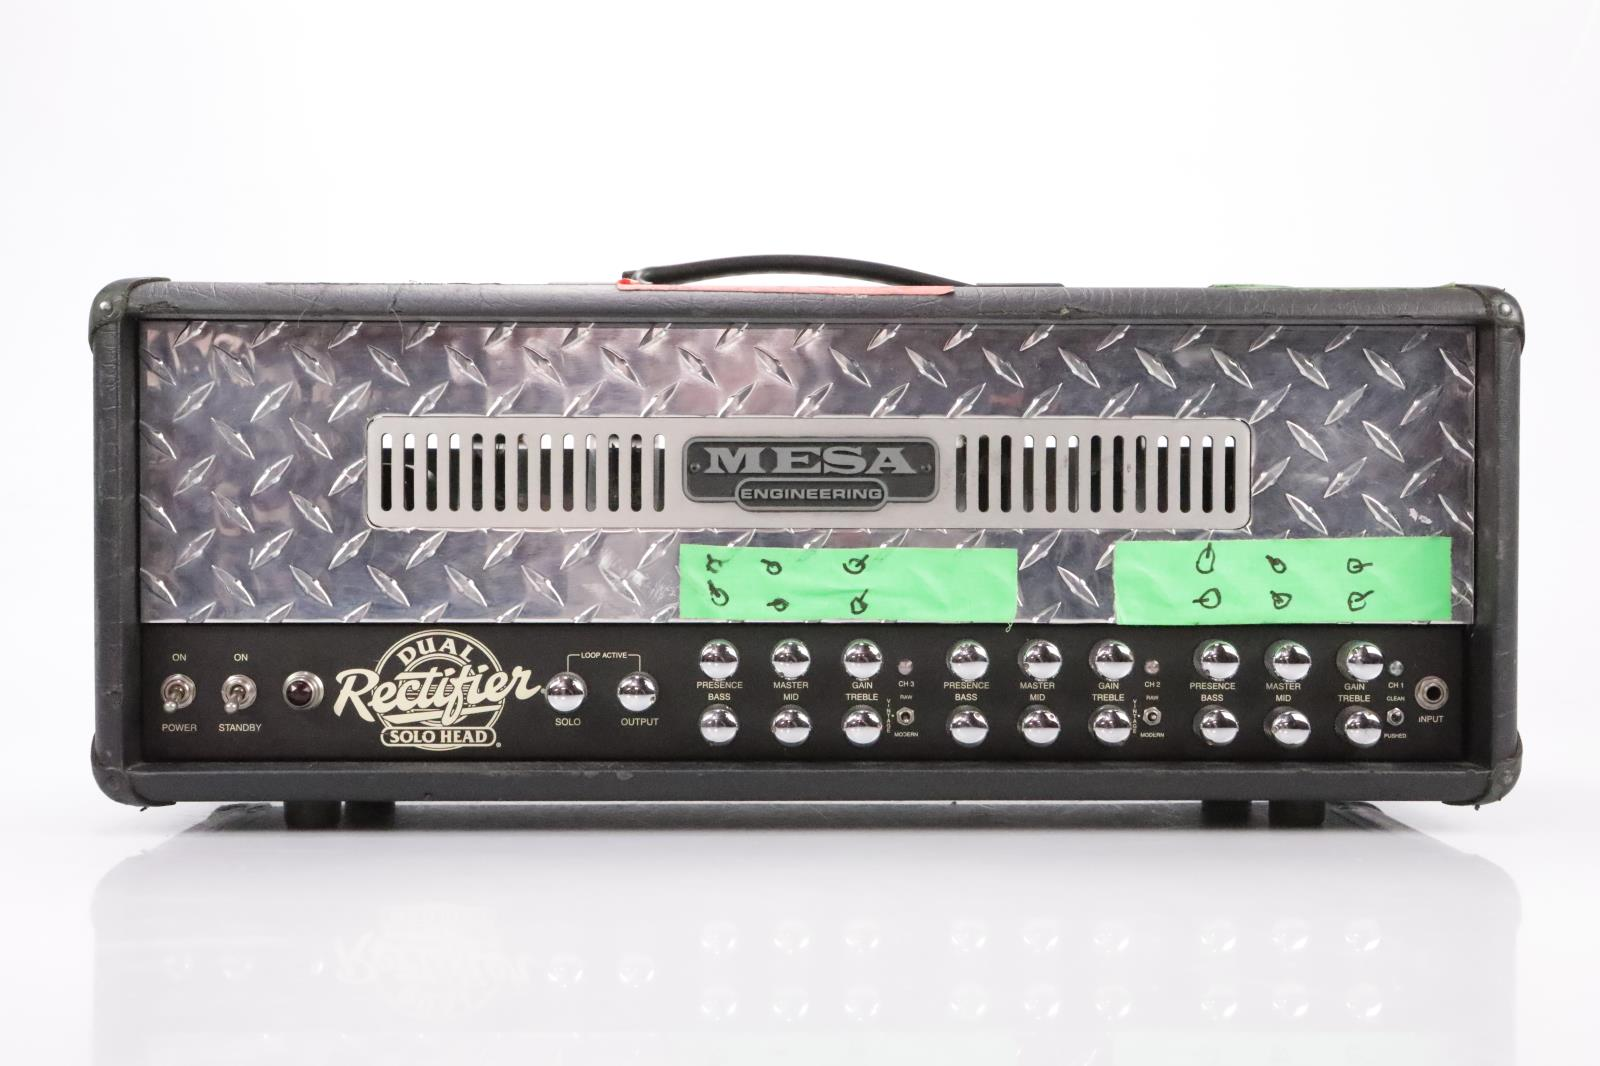 Mesa Boogie Dual Rectifier Solo Head 100 watt Tube Amp Owned by Satyricon #35067